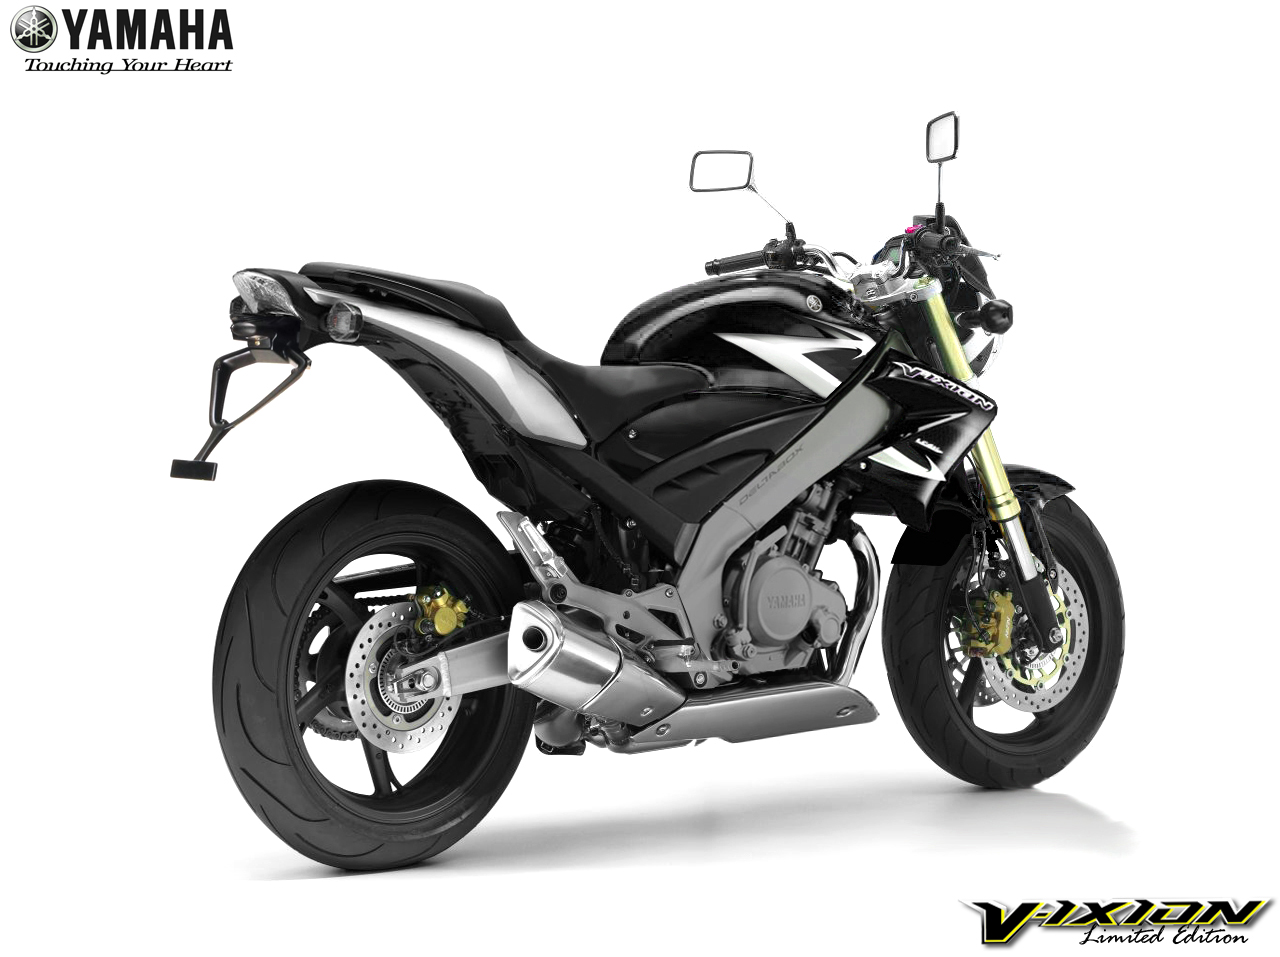 http://bekasivegaclub.files.wordpress.com/2008/07/yamaha-vixion-sp2-black.jpg